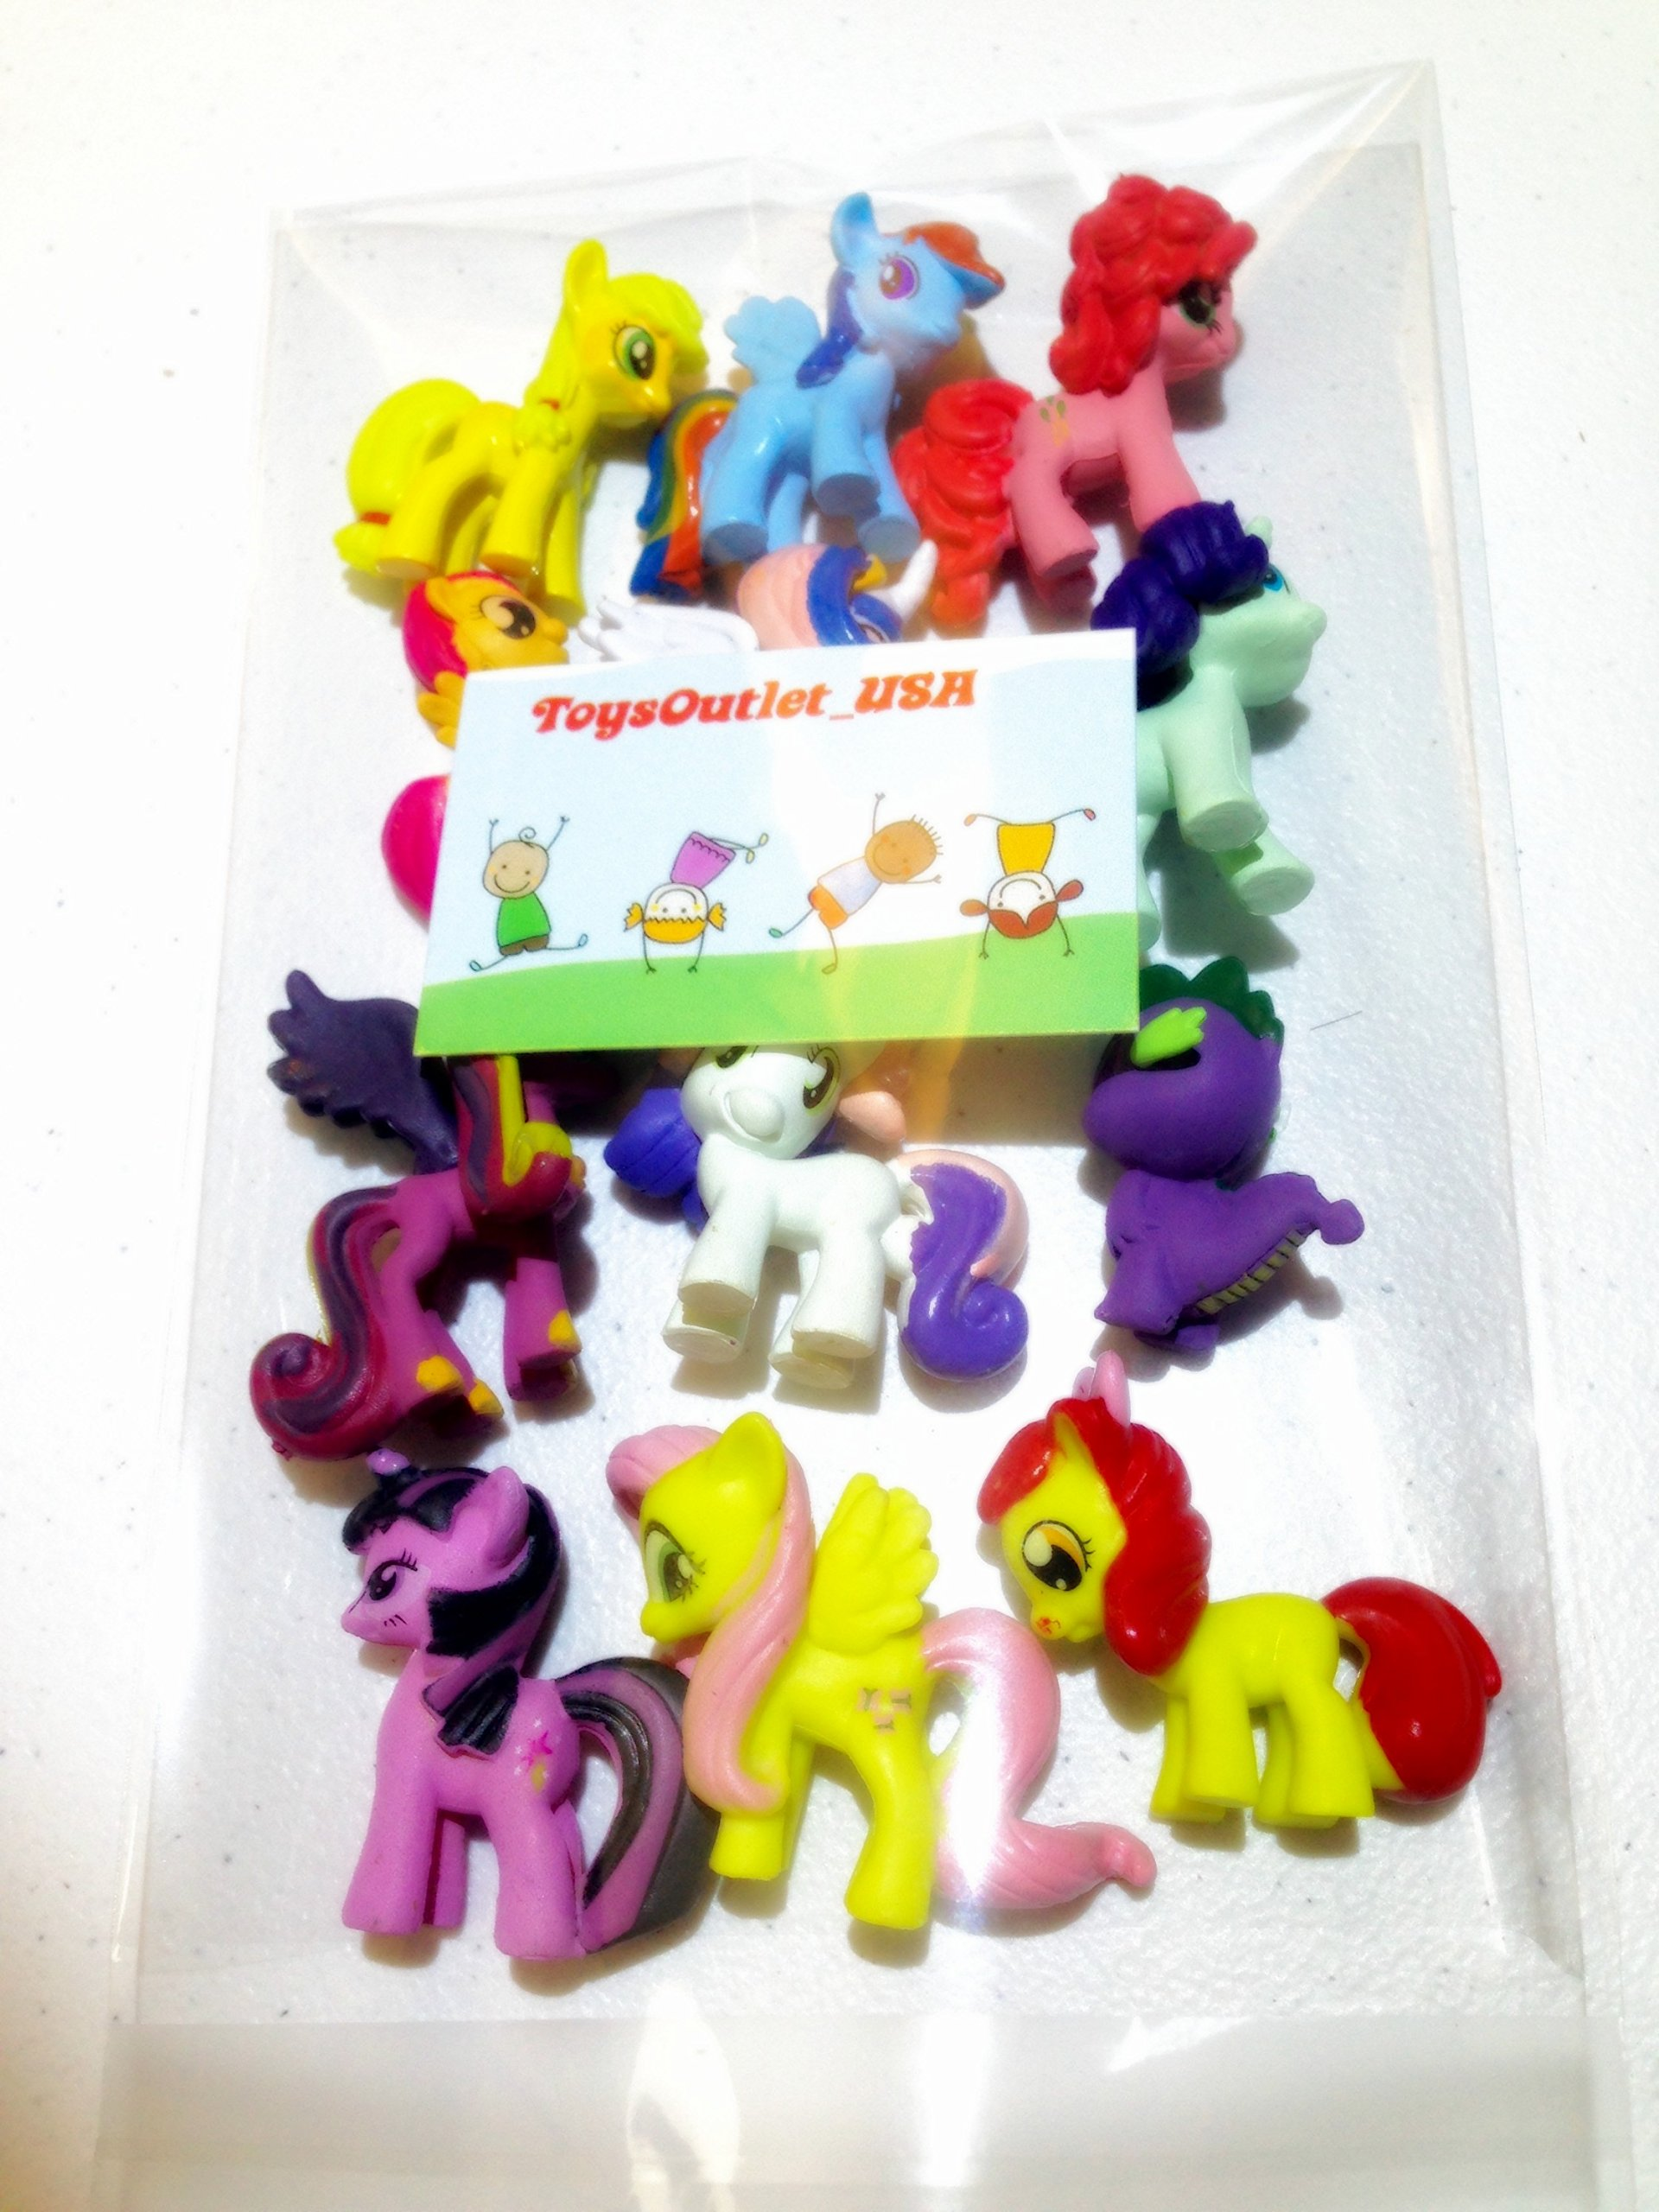 My Little Pony Set 12 pcs Toys | PVC Mini Figure Collection Playset | Kids Decor Cupcake Topper + Pony Stickers by My Little Pony (Image #8)